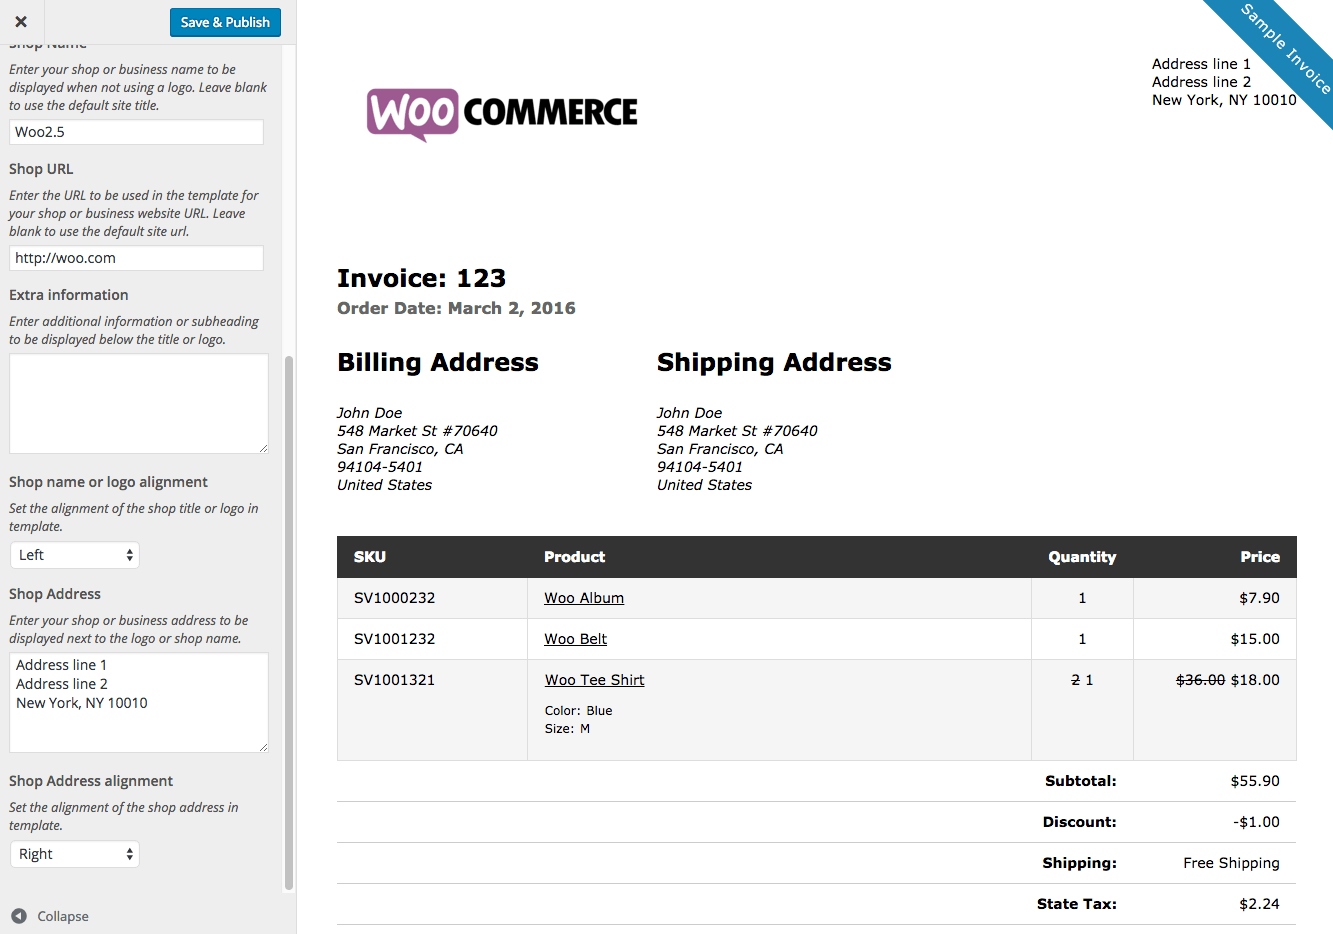 Ultrablogus  Pleasant Woocommerce Print Invoices Amp Packing Lists  Woocommerce Docs With Handsome Woocommerce Print Invoices  Packing Lists Customizer With Attractive How To Write An Invoice For Contract Work Also Donation Receipt In Addition Download Invoice Templates And Can You Return Stuff To Walmart Without A Receipt As Well As Upon Receipt Additionally Cash Receipt Template From Docswoocommercecom With Ultrablogus  Handsome Woocommerce Print Invoices Amp Packing Lists  Woocommerce Docs With Attractive Woocommerce Print Invoices  Packing Lists Customizer And Pleasant How To Write An Invoice For Contract Work Also Donation Receipt In Addition Download Invoice Templates From Docswoocommercecom